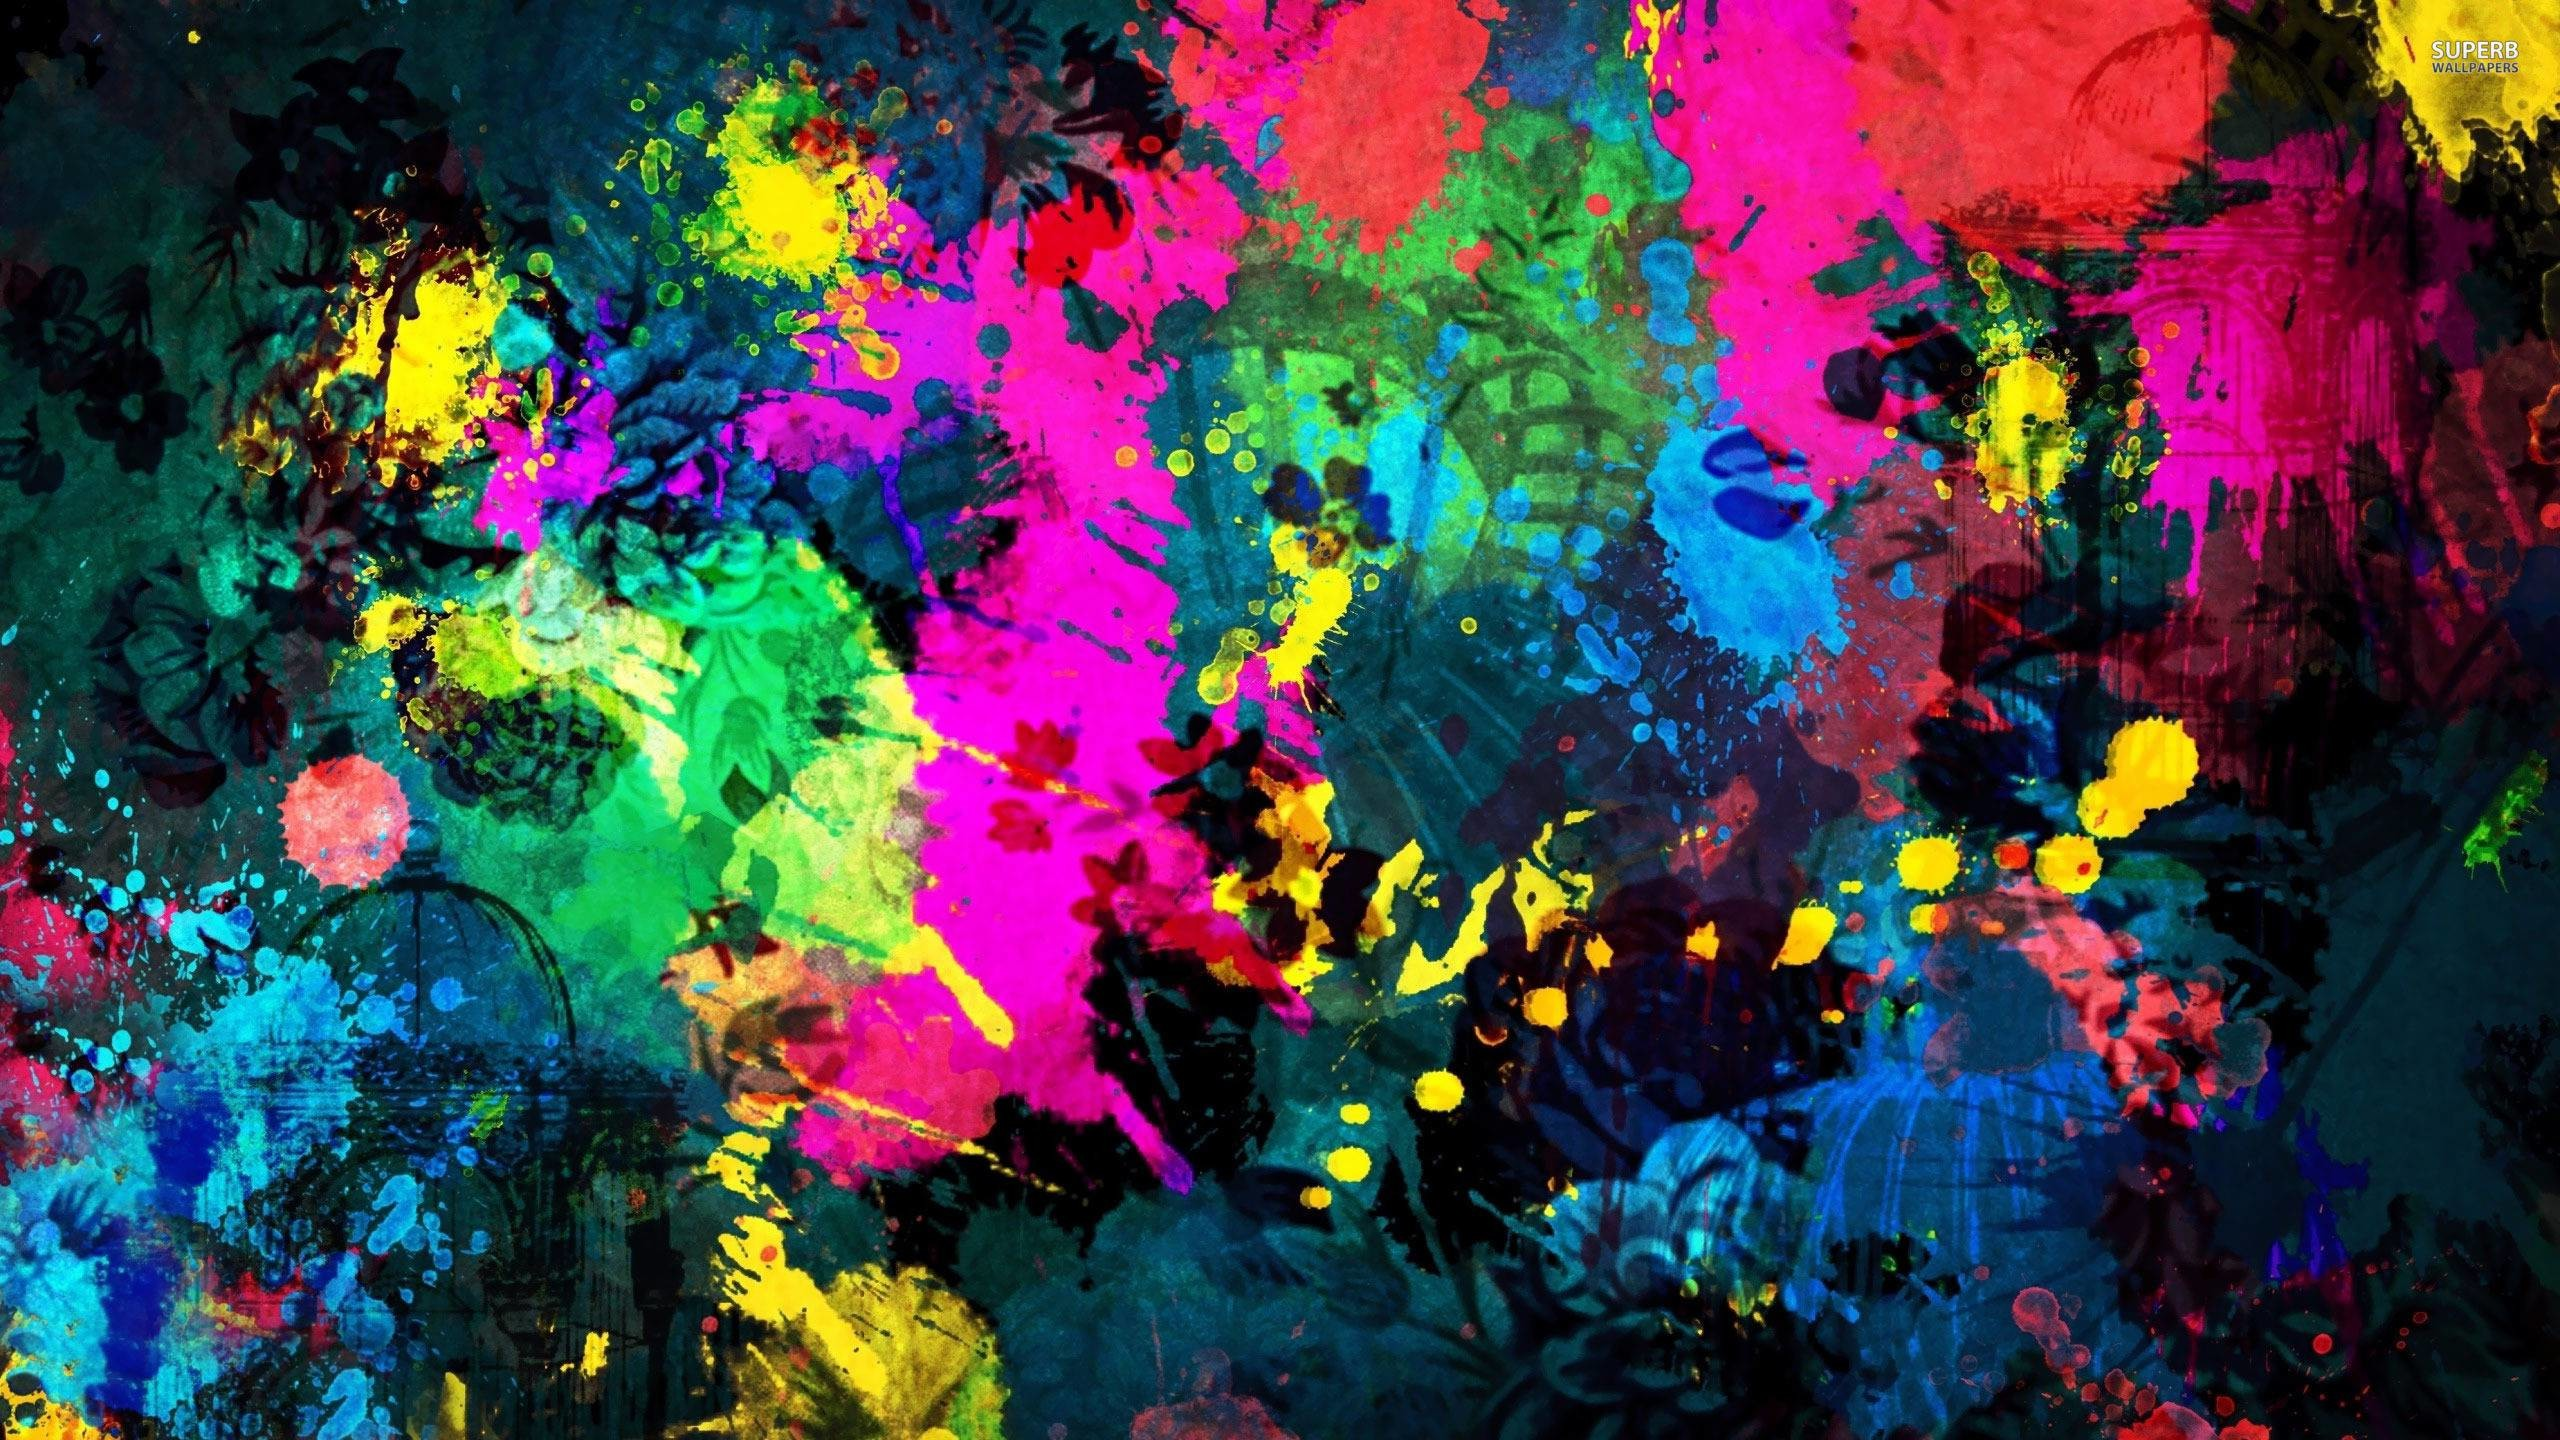 2560x1440 Paint splatter wallpaper - Abstract wallpapers - #18804